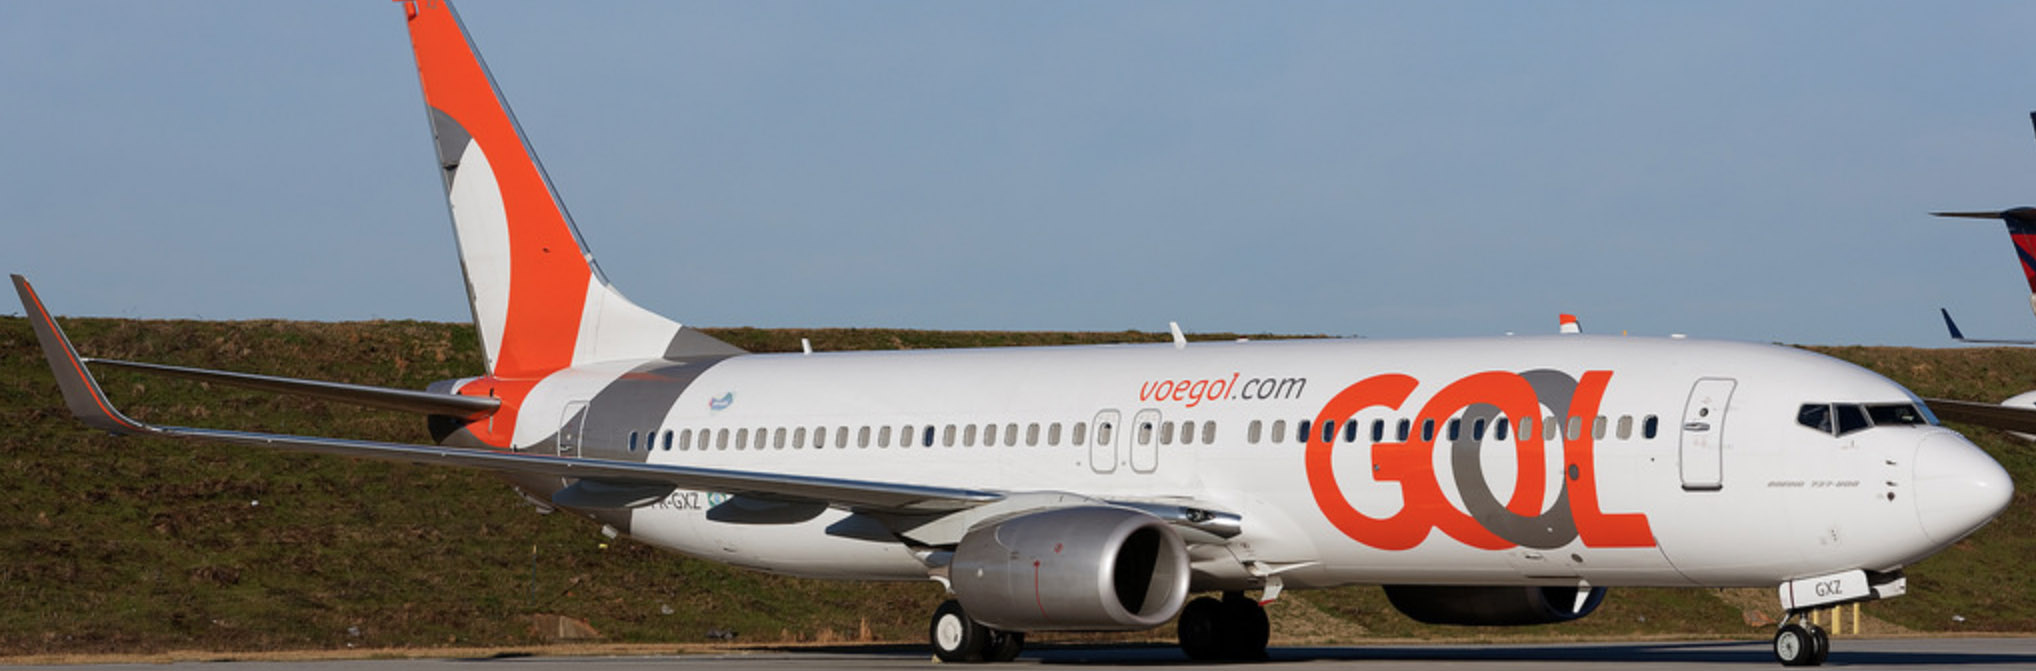 GOL's latest Boeing 737-800NG airliner.